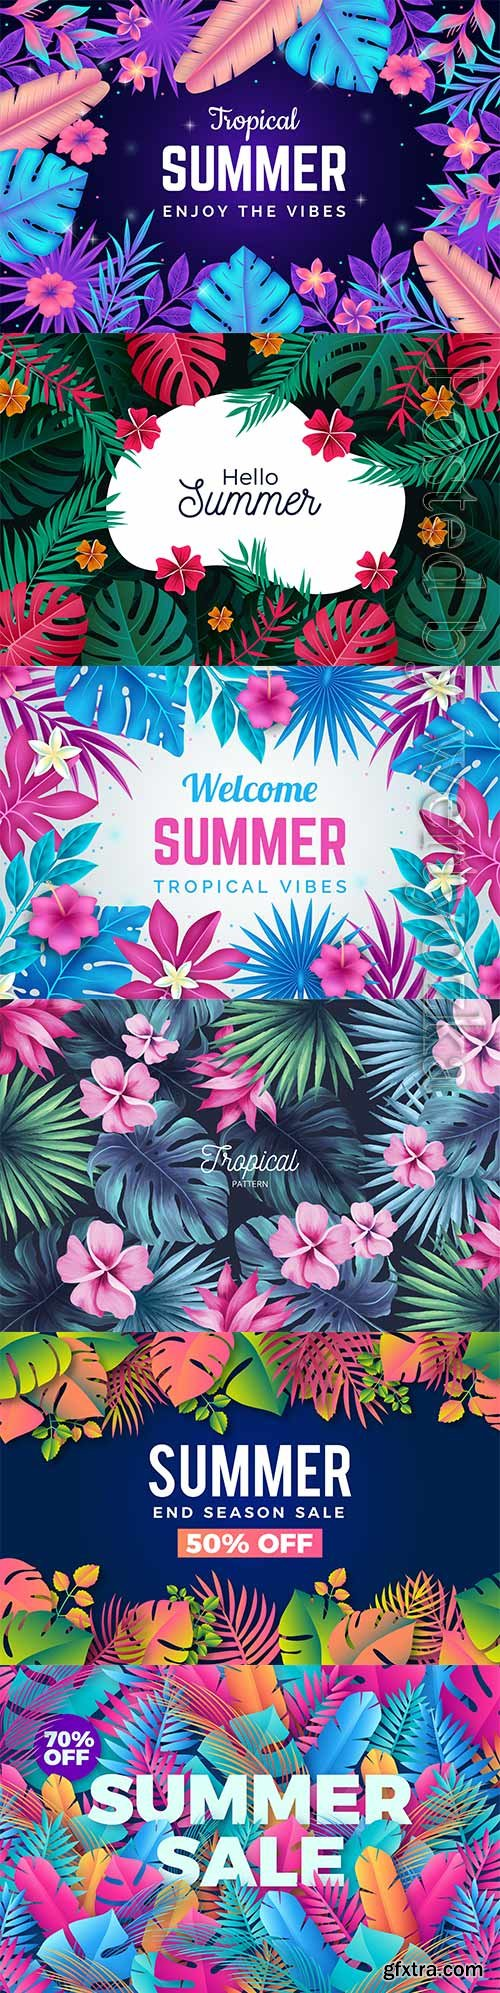 Summer tropical vector background